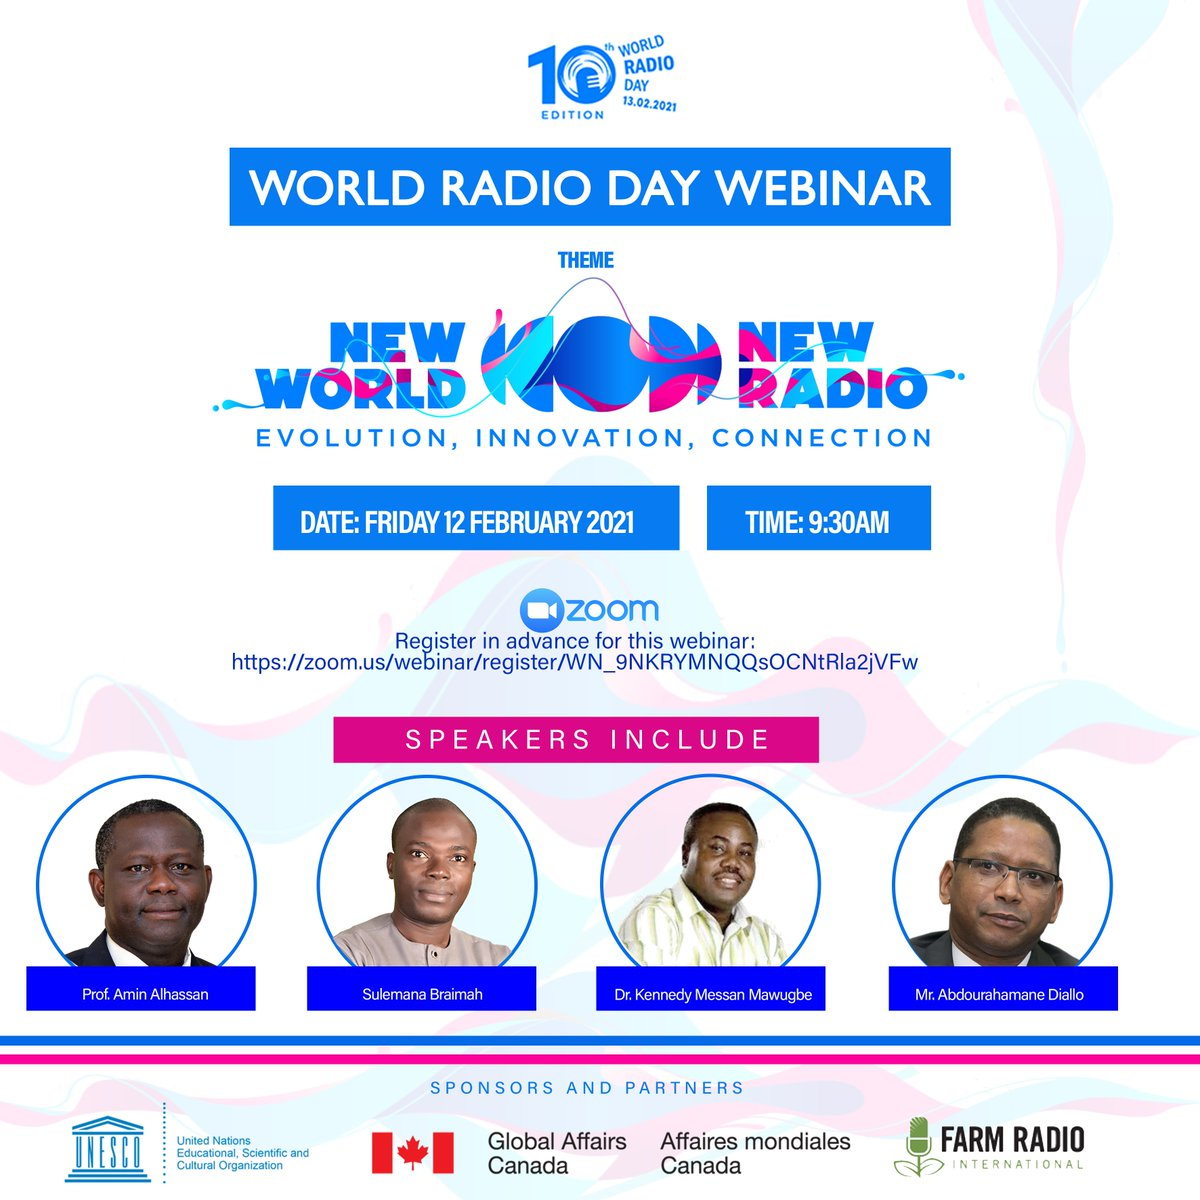 ICYMI: On 12th February, we successfully hosted a webinar in celebration of #WorldRadioDay 2021.  Once again, we appreciate the efforts of everyone who supported to make the webinar a success. That's why we have taken the time to acknowledge some key partners. 1/5 #WRD2021